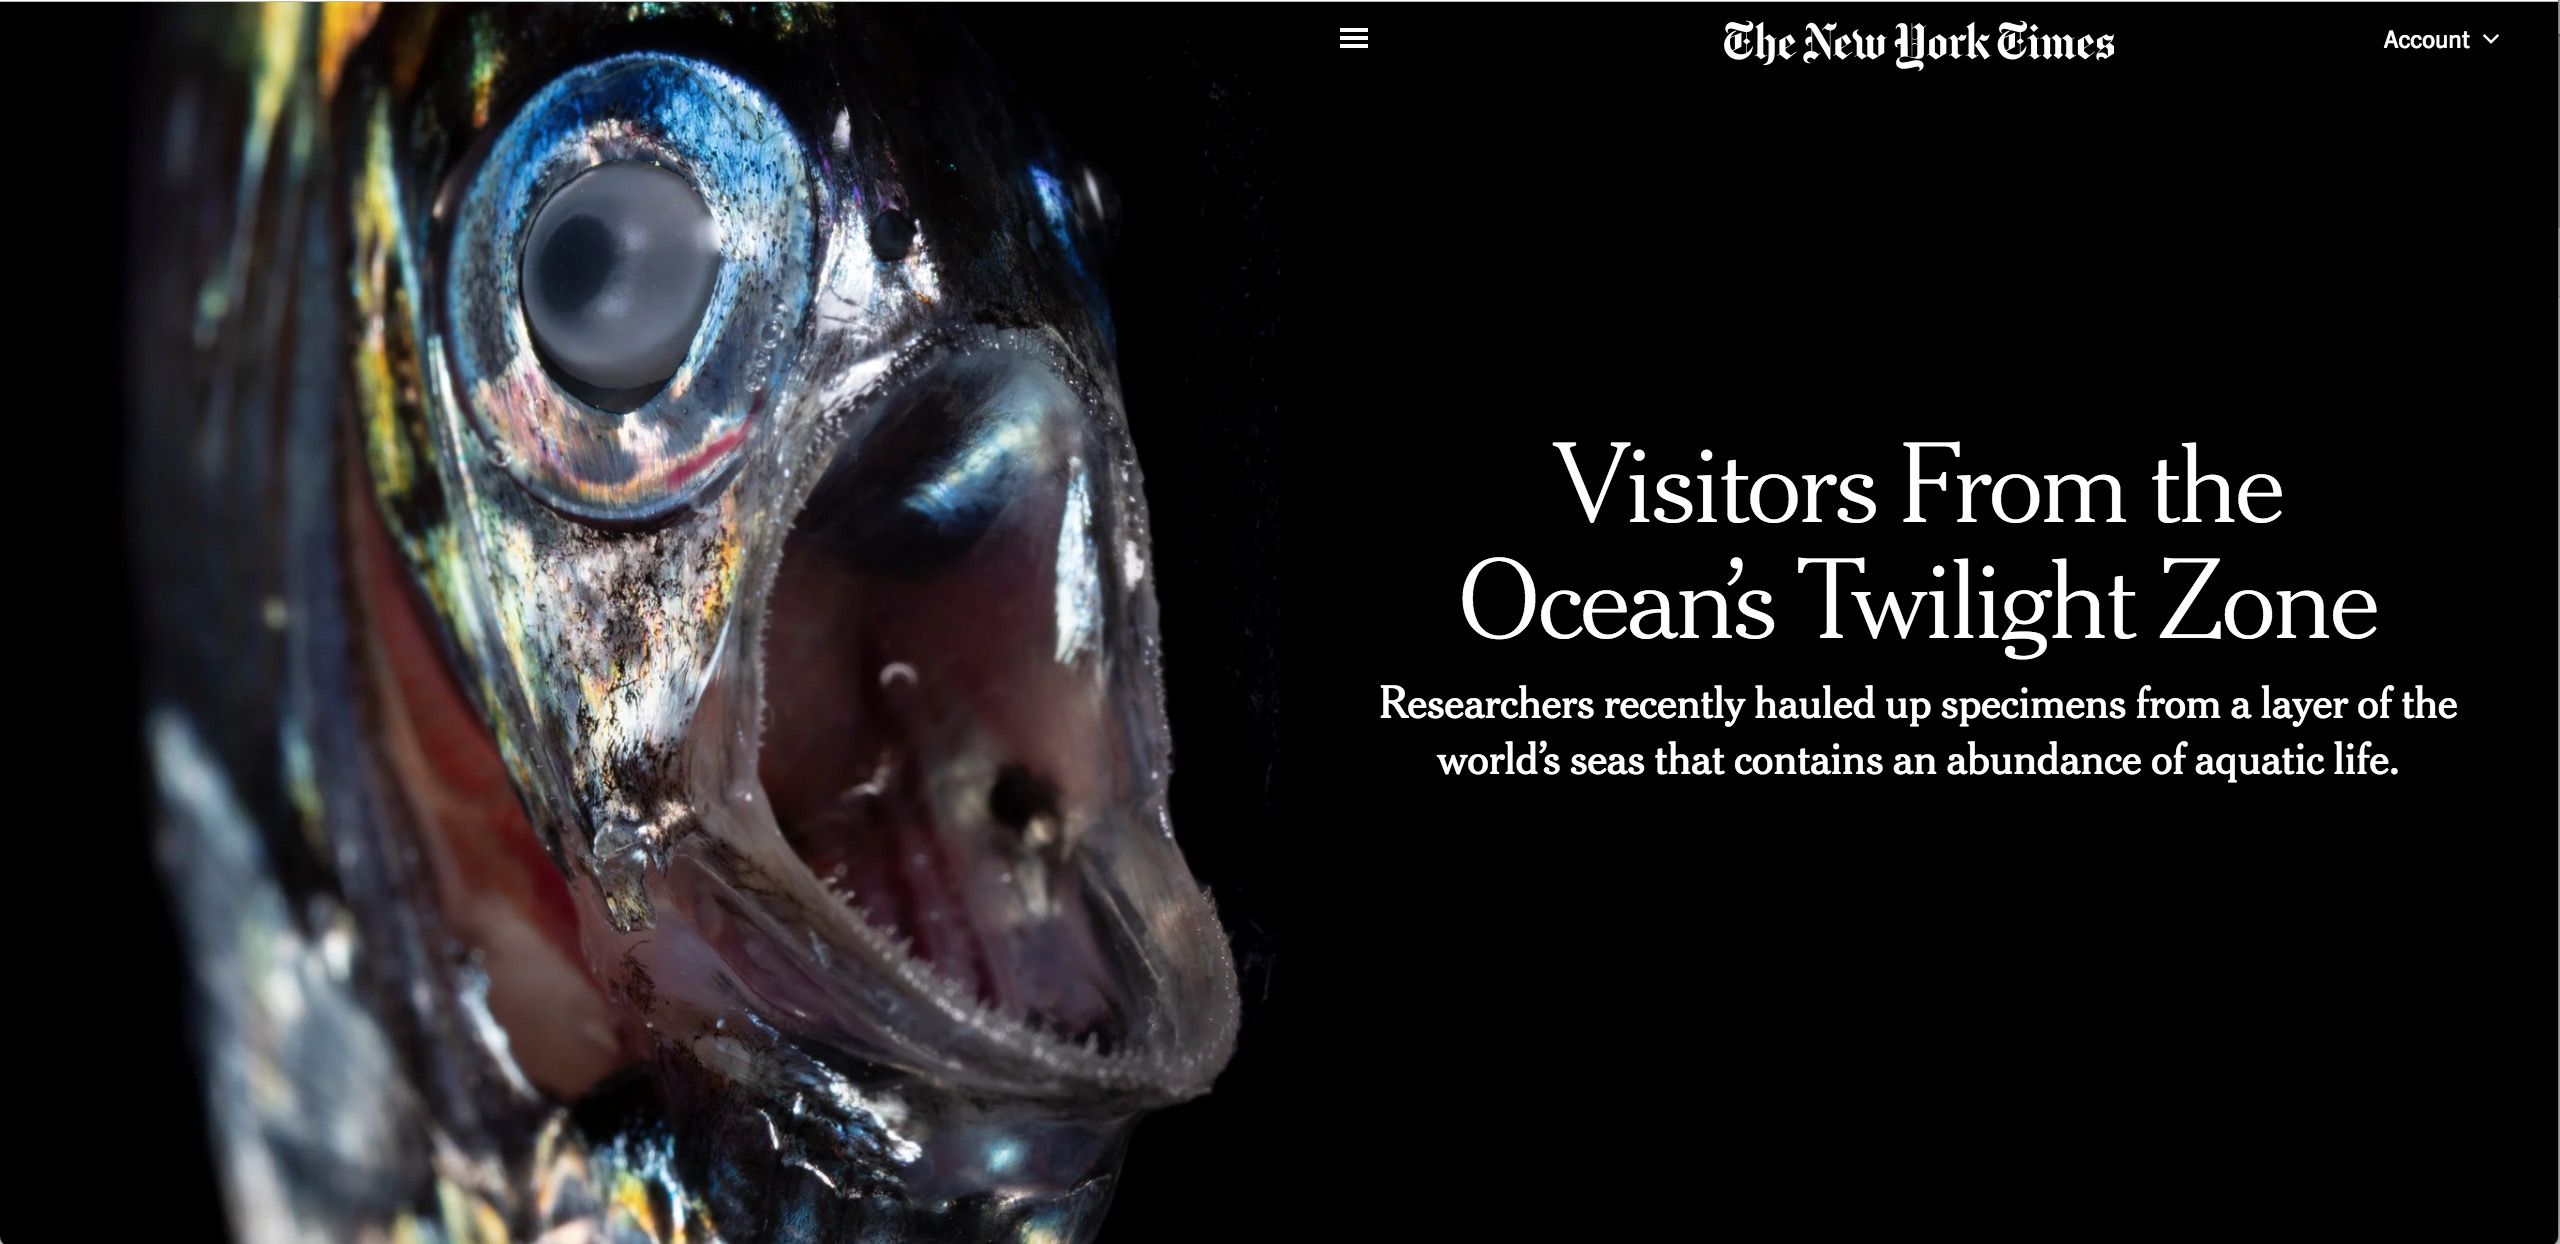 The New York Times: Visitors from the Ocean's Twilight Zone